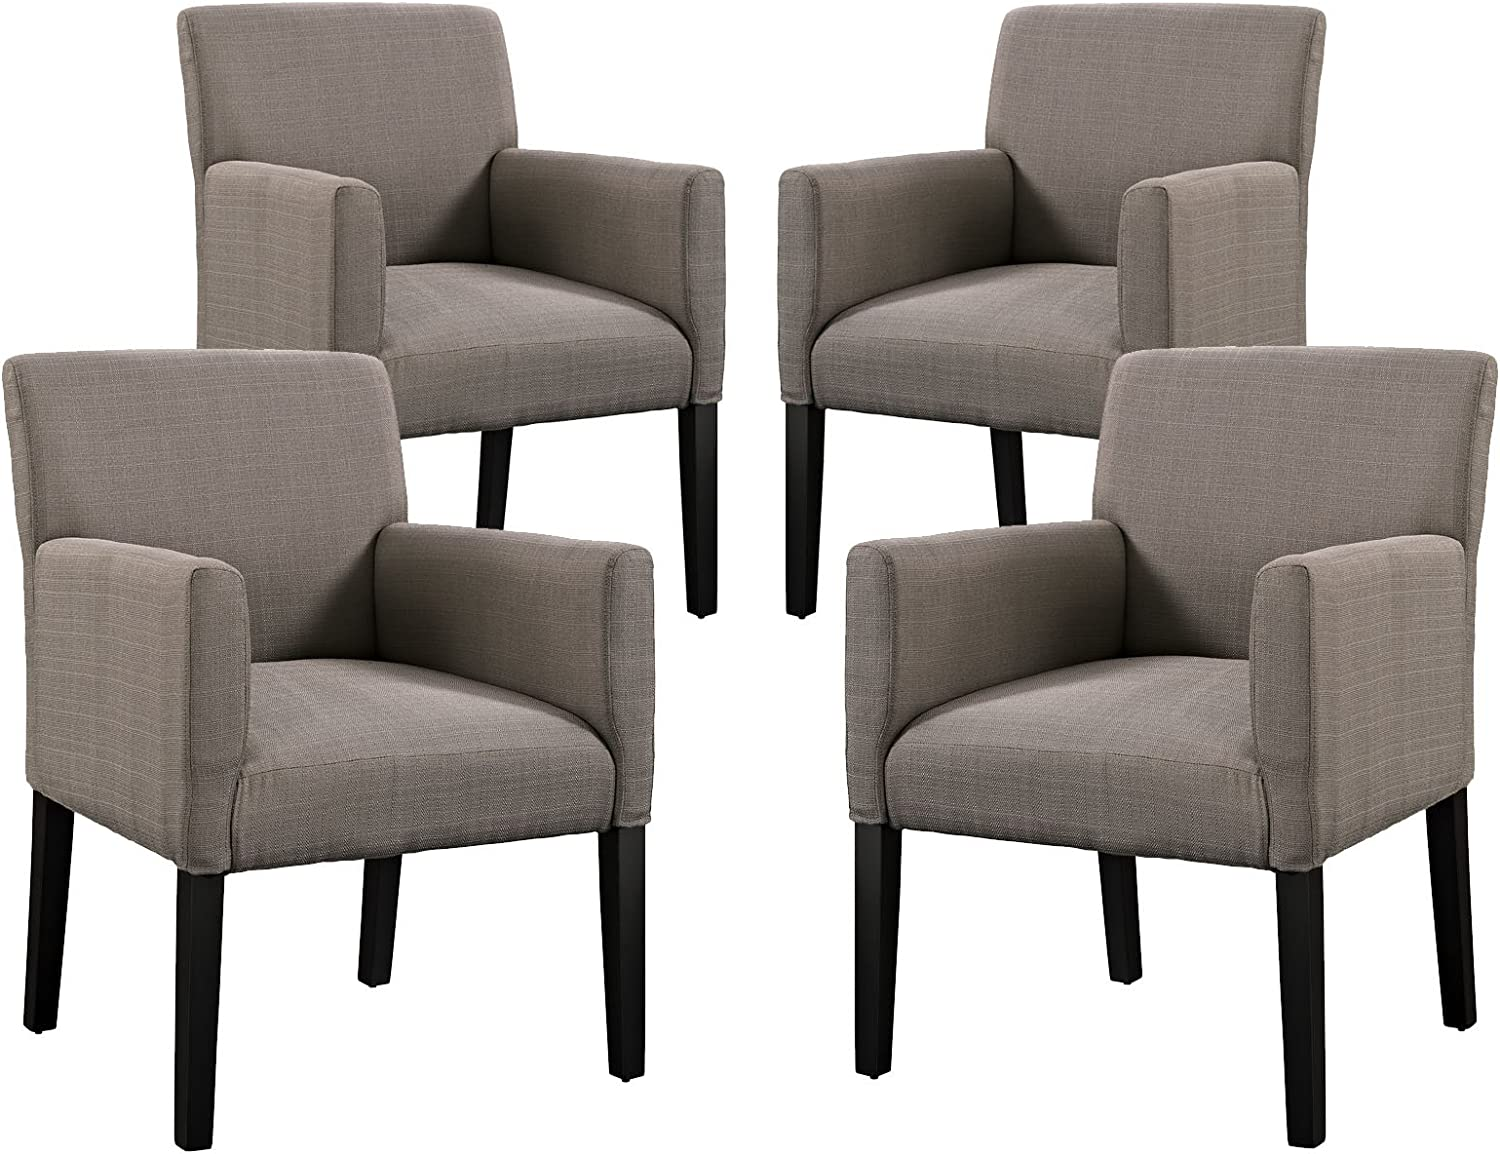 Modway Chloe Upholstered Fabric Modern Farmhouse Dining Arm Accent Chair in Gray - Set of 4